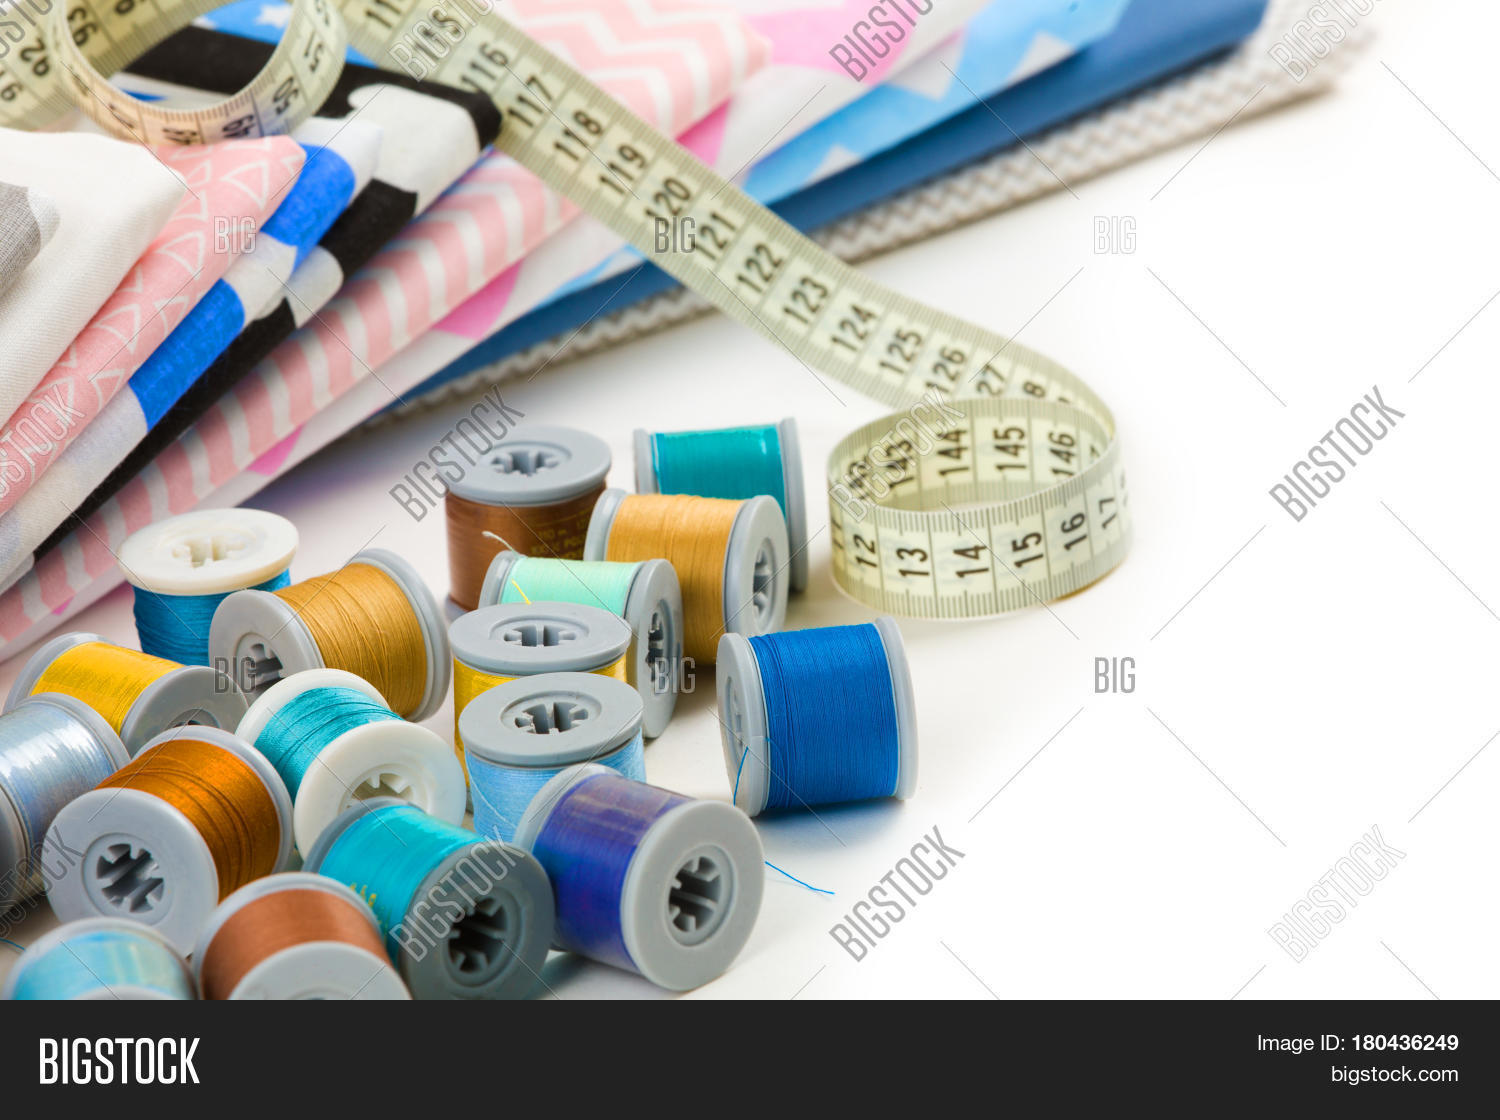 apparel,assortment,background,blank,casual,clean,closeup,cloth,clothes,clothing,color,colored,colorful,concept,cotton,diy,fabric,fashion,folded,garment,group,heap,housework,ironed,kitchen,linen,material,measurement,napkin,nobody,object,pattern,pile,pressed,raw,red,sewing,spool,stack,style,table,tablecloth,tailored,tailoring,tape,textile,thread,top,white,yellow